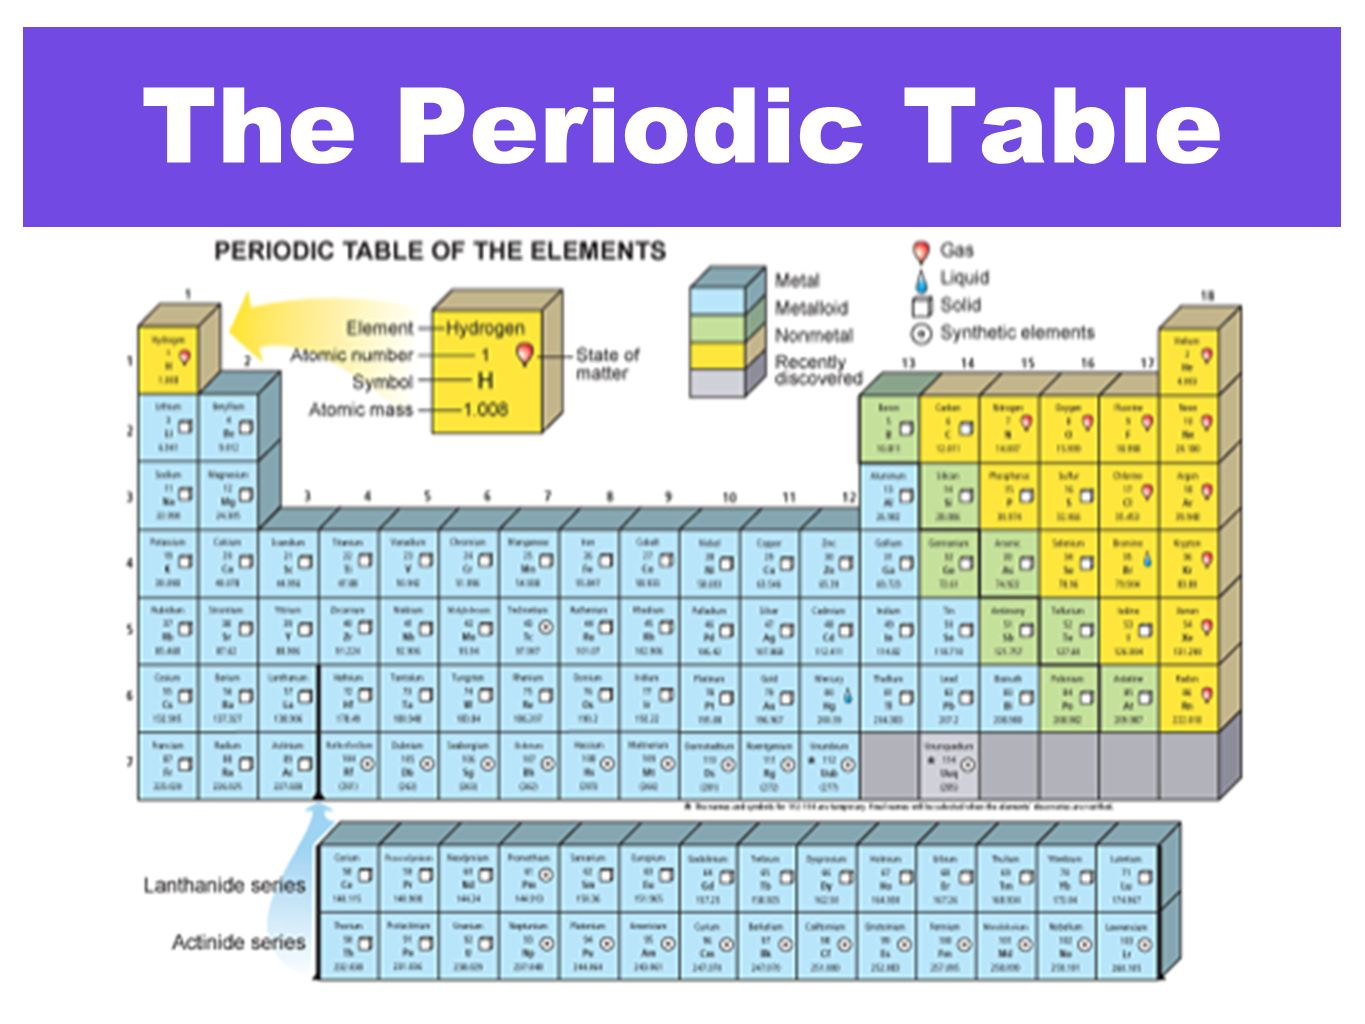 States of matter periodic table images periodic table images states of matter periodic table image collections periodic table states of matter periodic table choice image gamestrikefo Gallery